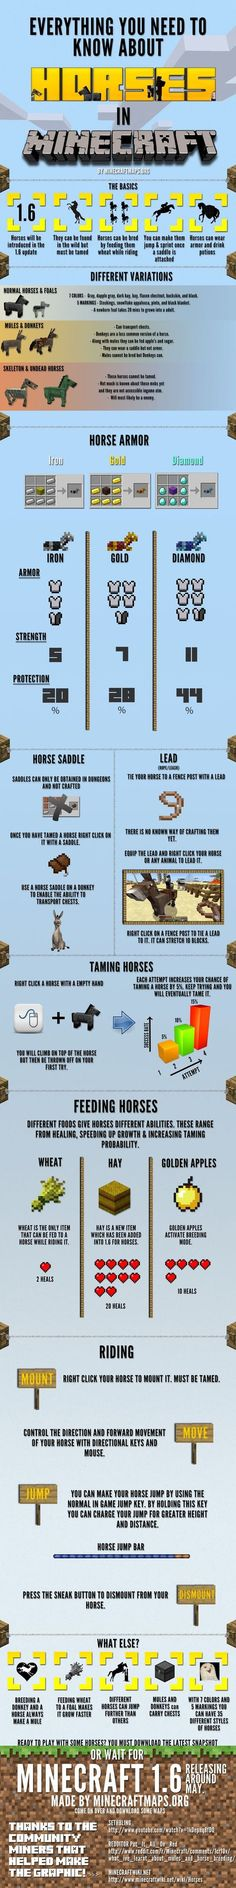 Everything you need to know about horses in Minecraft now in you can tame the skeleton and zombie horses, I have one of each but you can only put a saddle on, no armor. And you can't put a lead on them either which sucks but they are still really cool! Minecraft Horse, Minecraft Blueprints, Minecraft Creations, How To Play Minecraft, Minecraft Memes, Minecraft Projects, Minecraft Crafts, Minecraft Designs, Minecraft Party